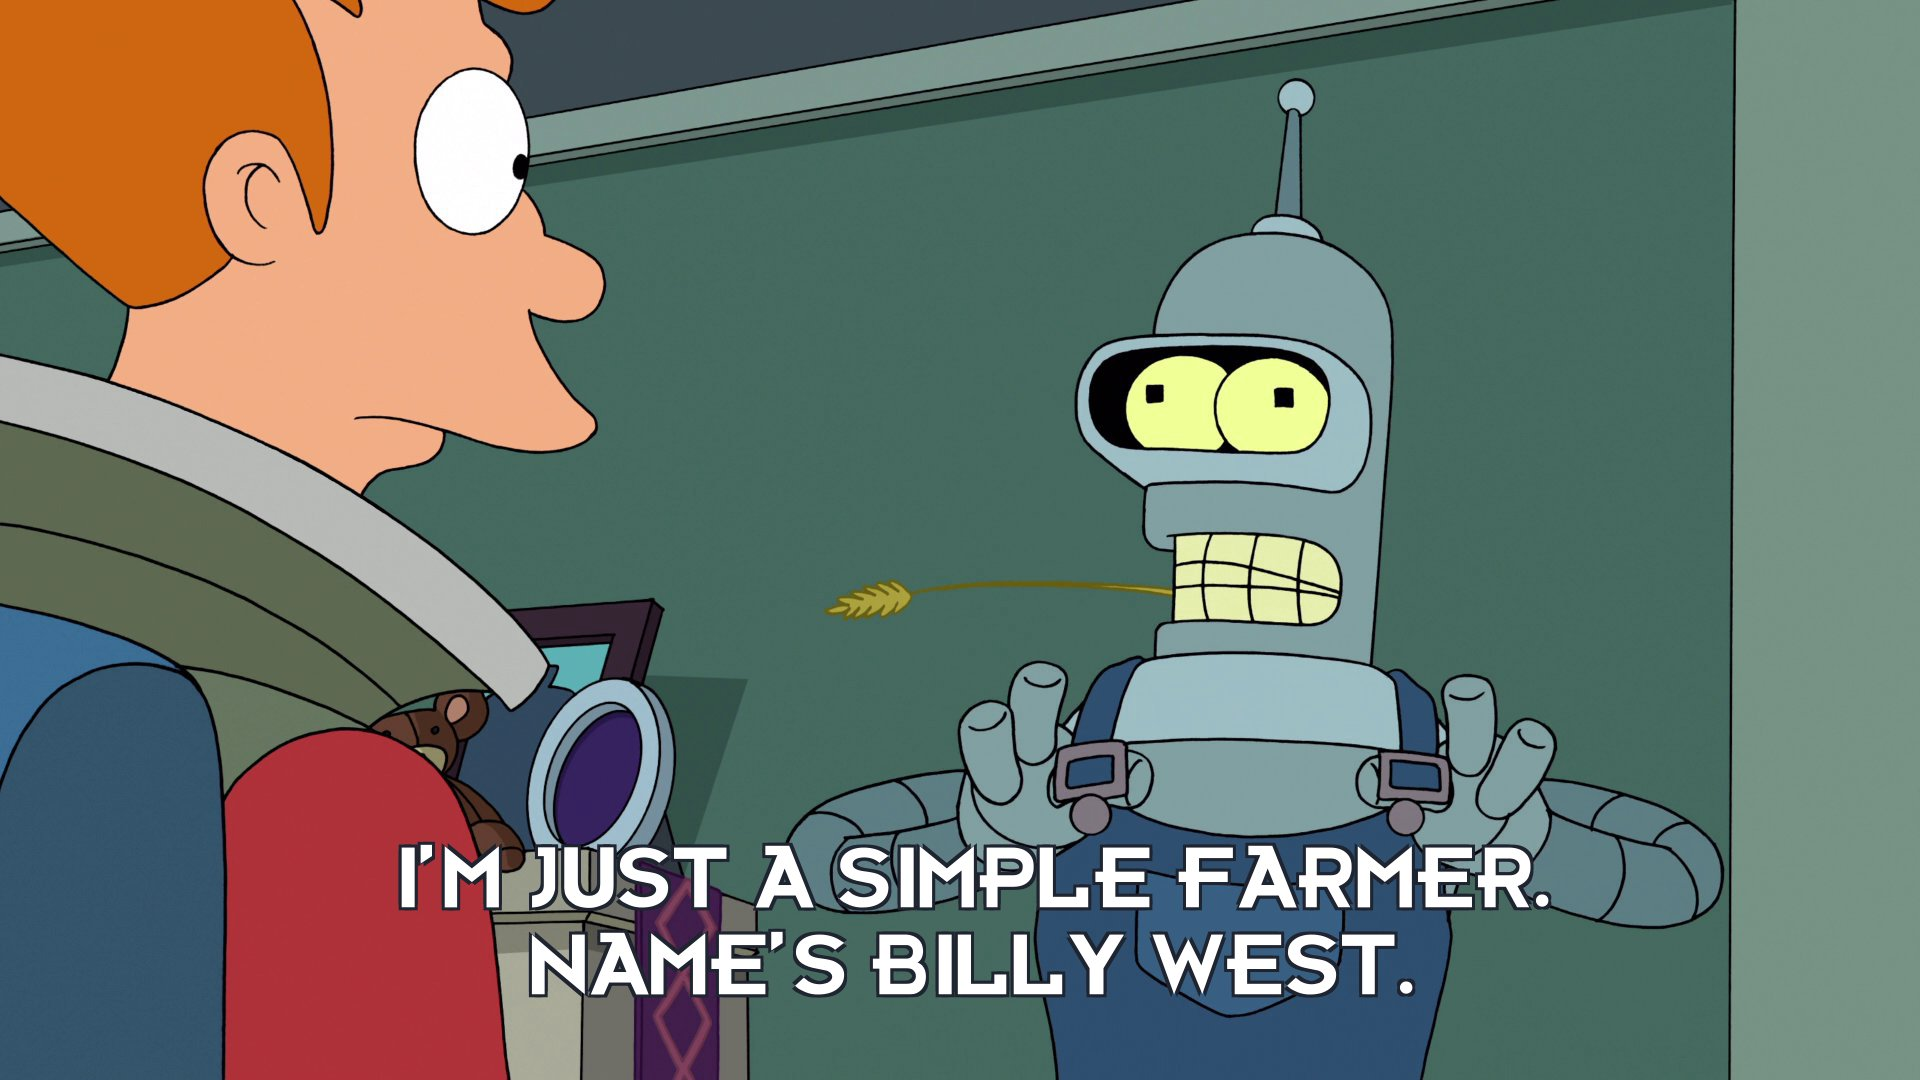 Billy West: I'm just a simple farmer. Name's Billy West.